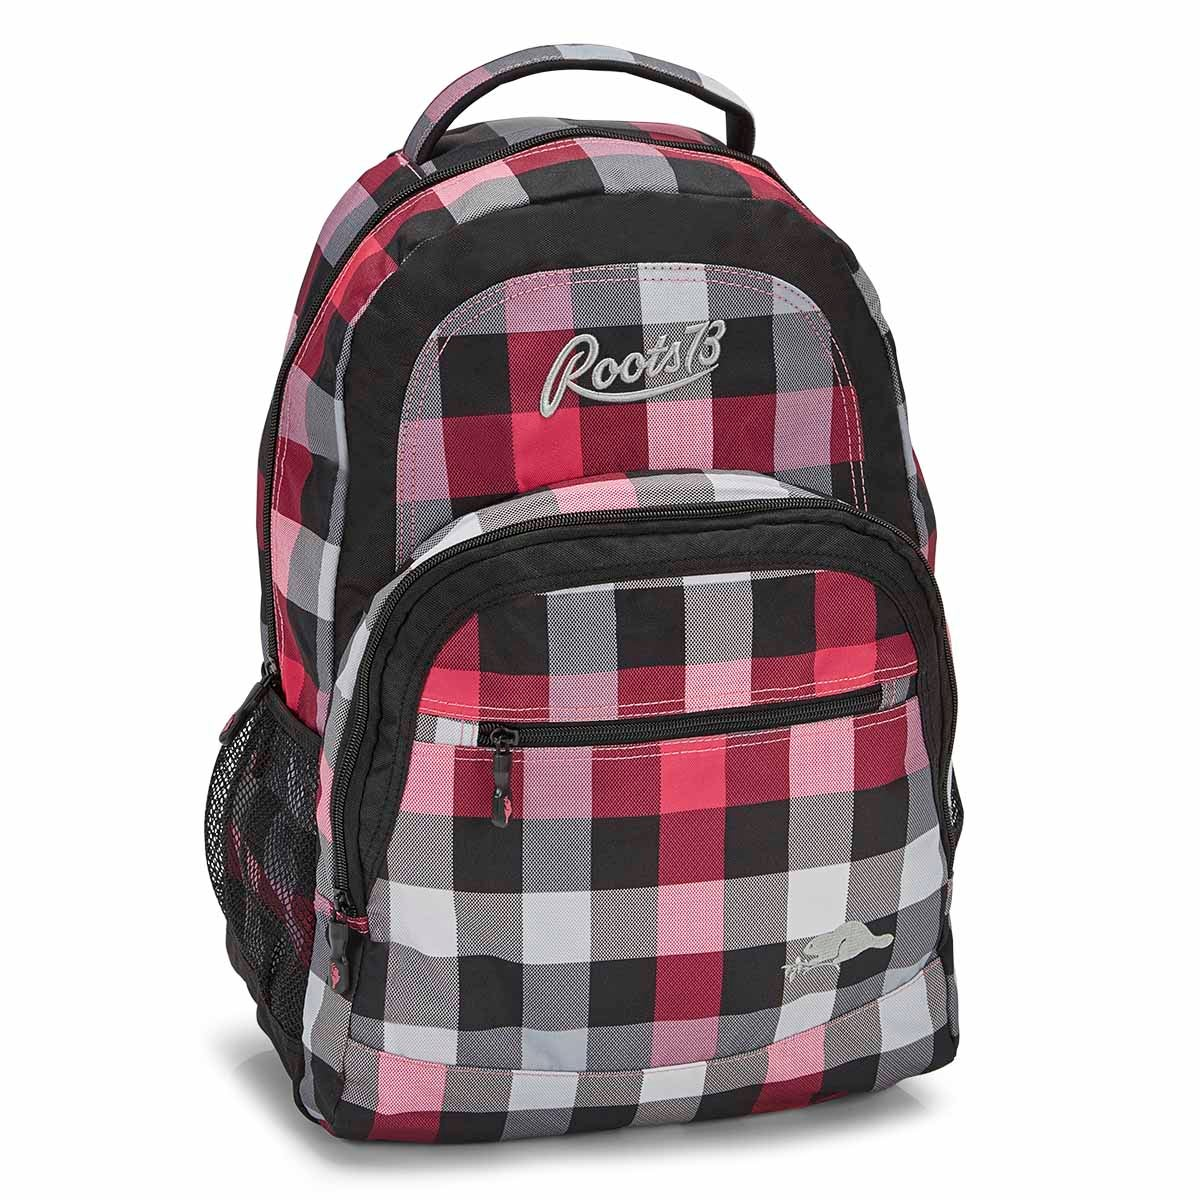 Women's RTS4503 pink plaid backpack